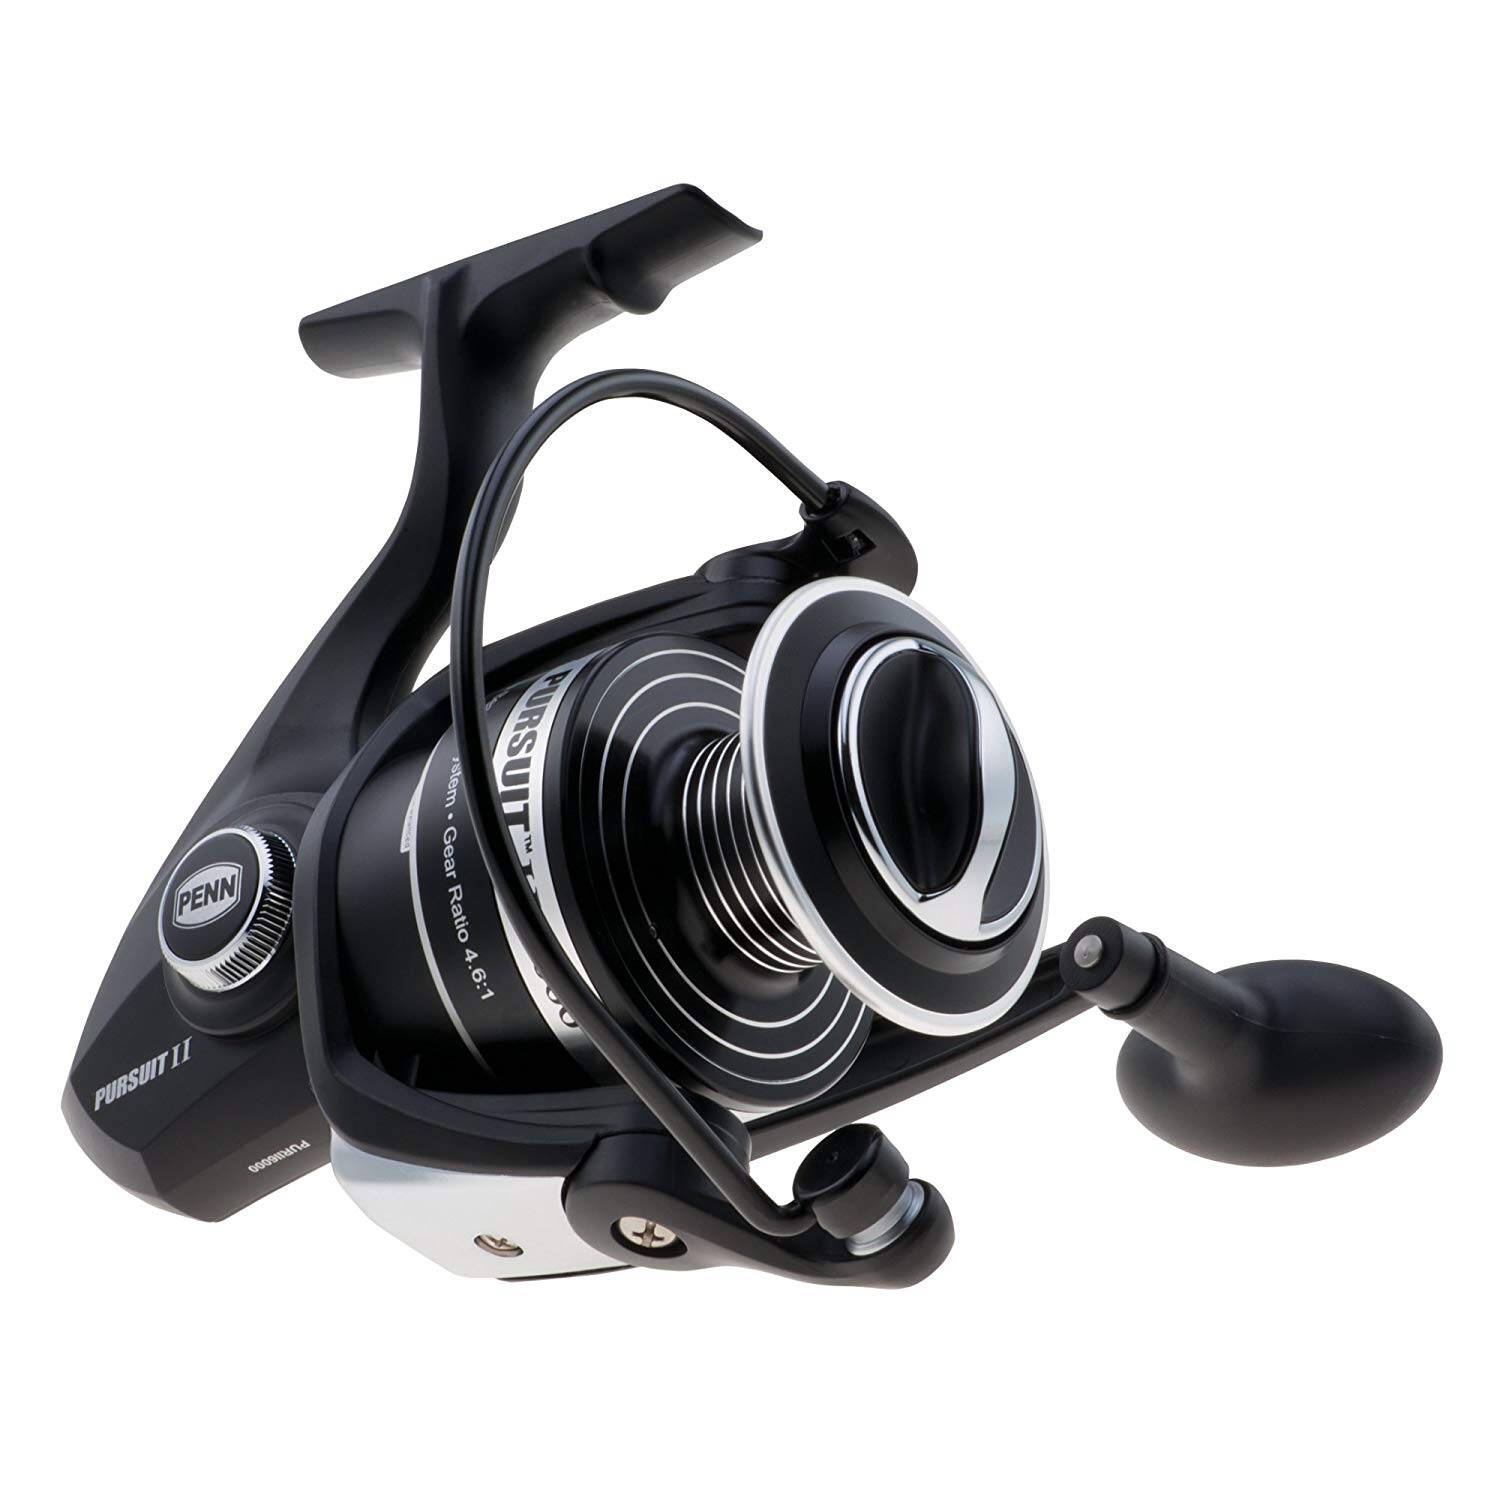 Penn Pursuit II & III Spinning Fishing Reel